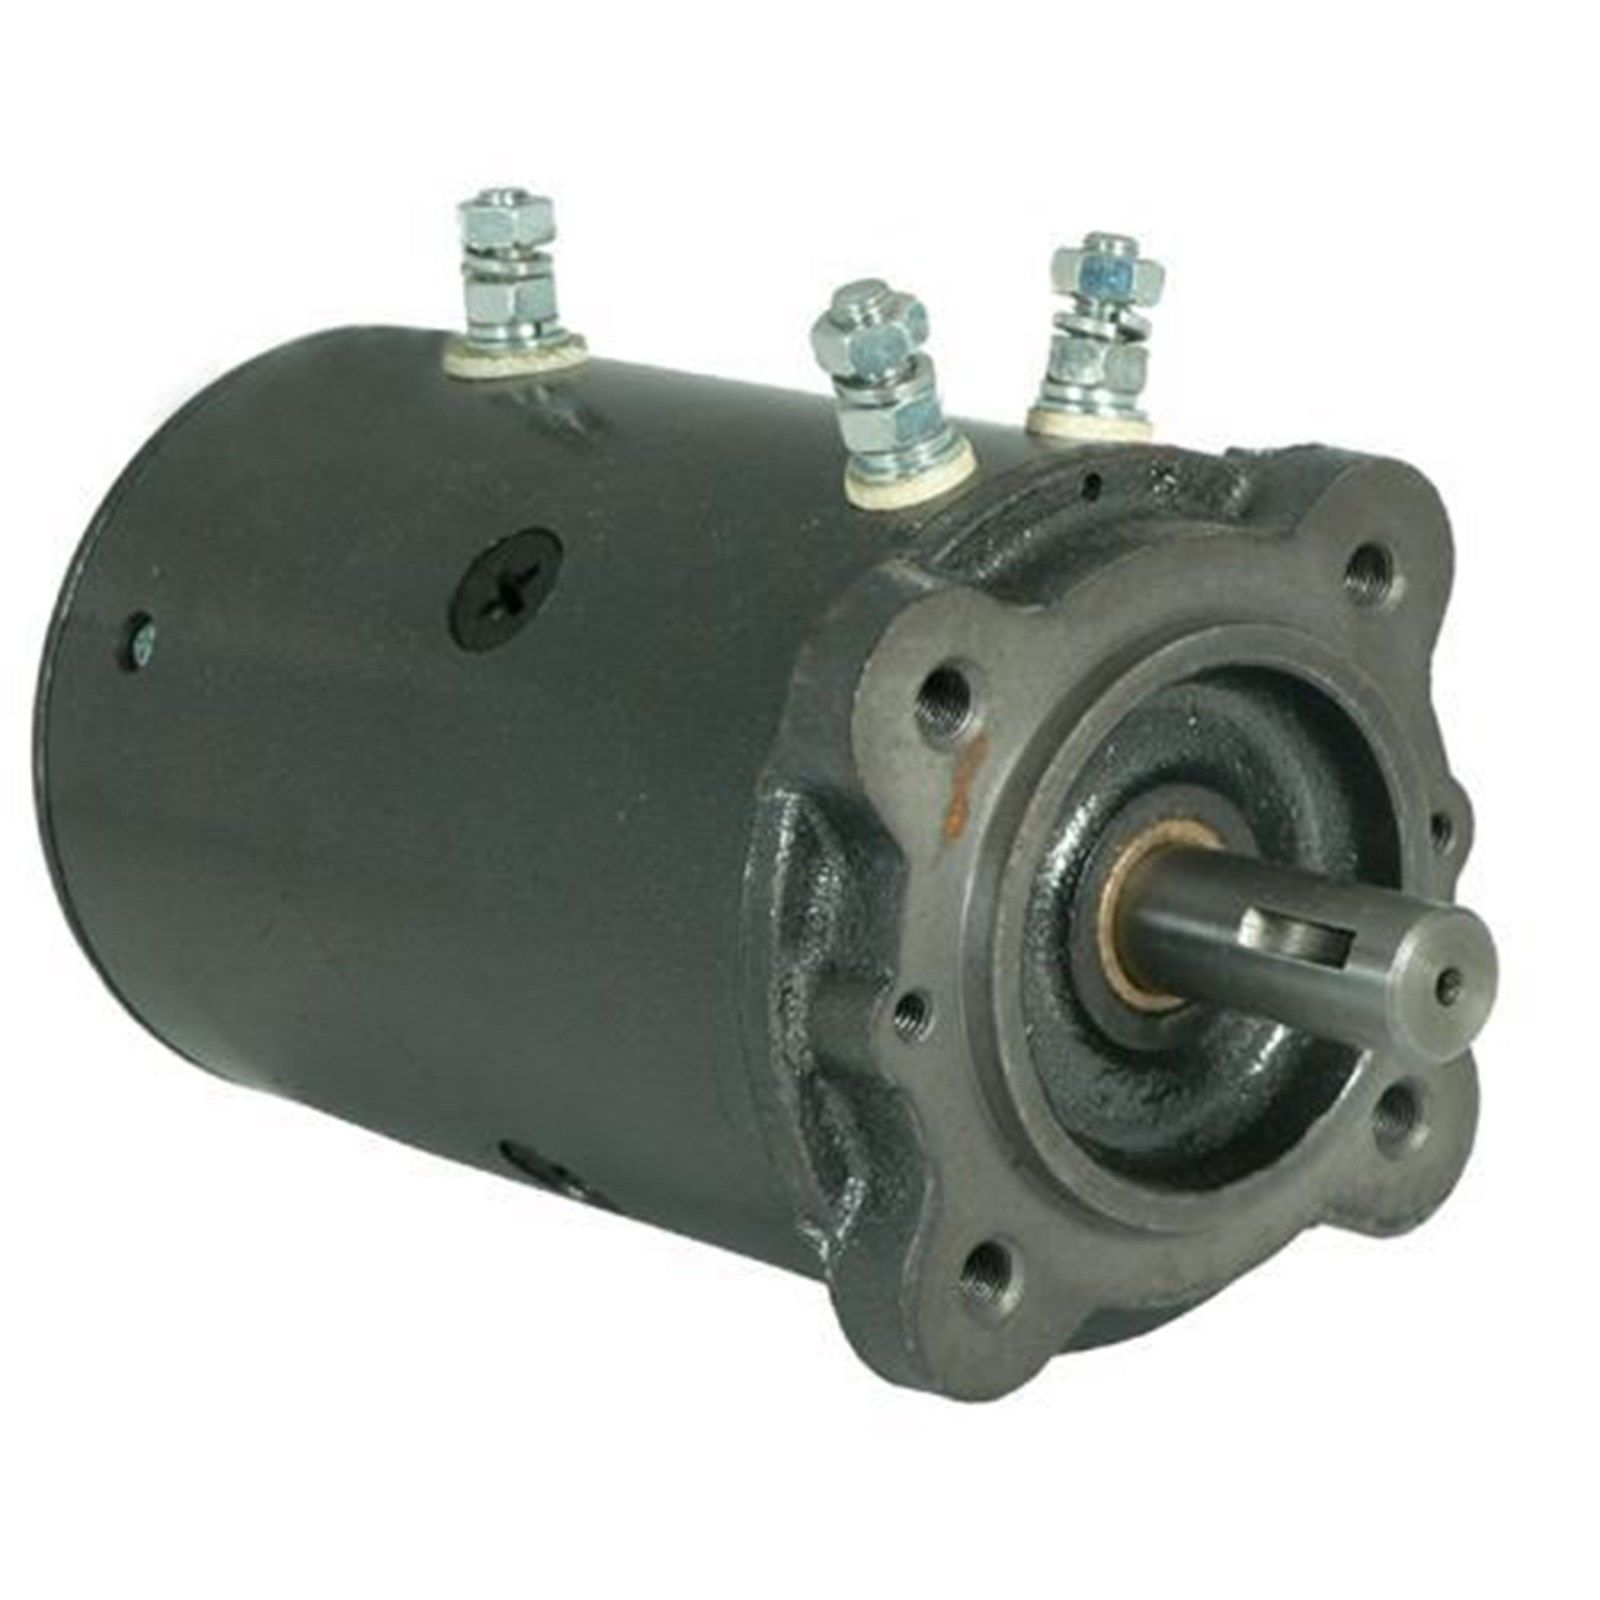 hight resolution of new winch motor 24v ramsey winch 458002 458005 mmd4001 mmd4401 46 2289 46 3523